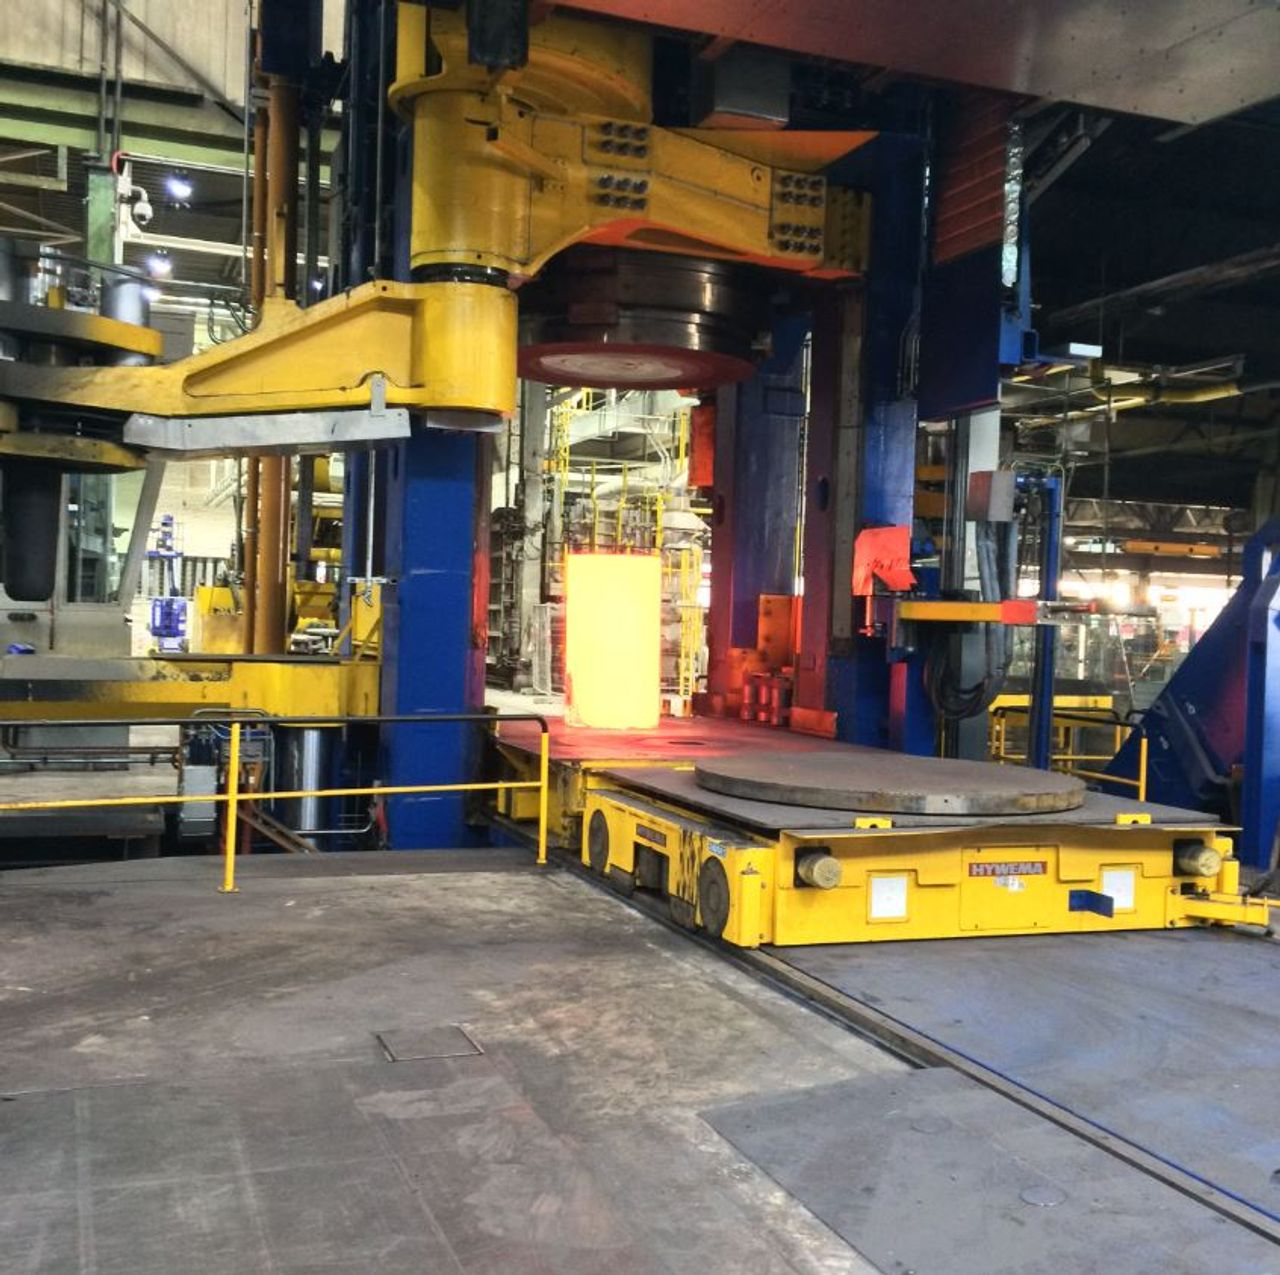 Annealing of the raw material on a 6,000 t press